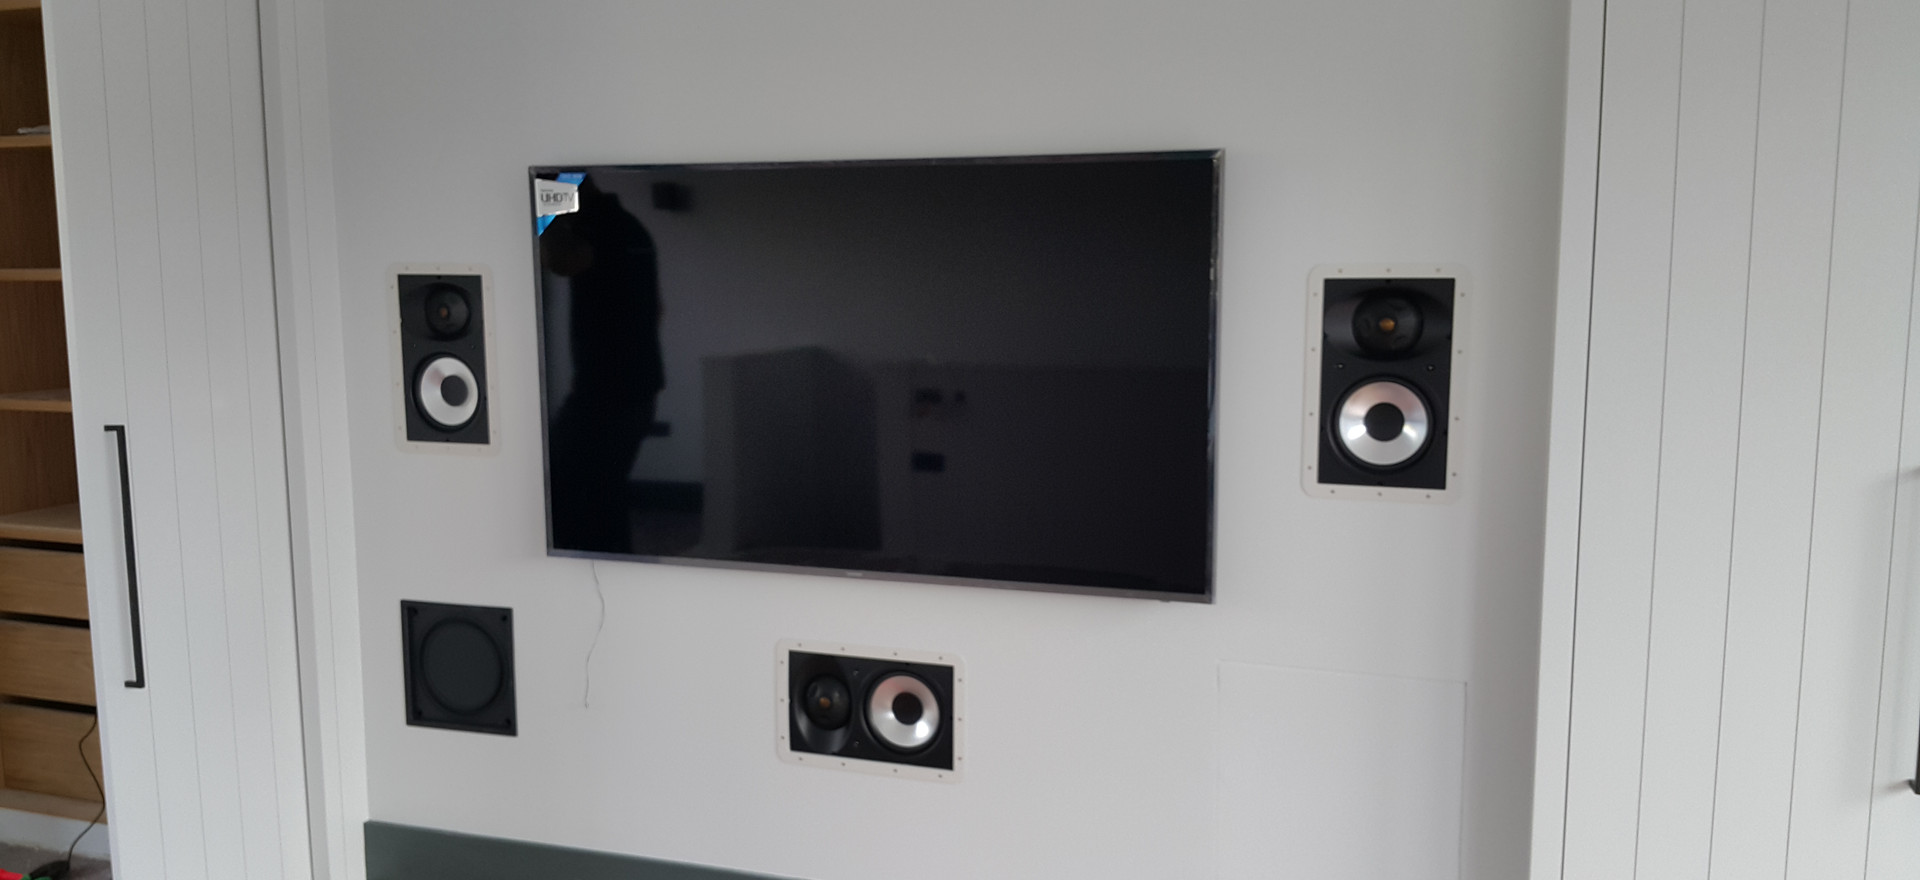 Surround sound 5.1 with sub and television mount